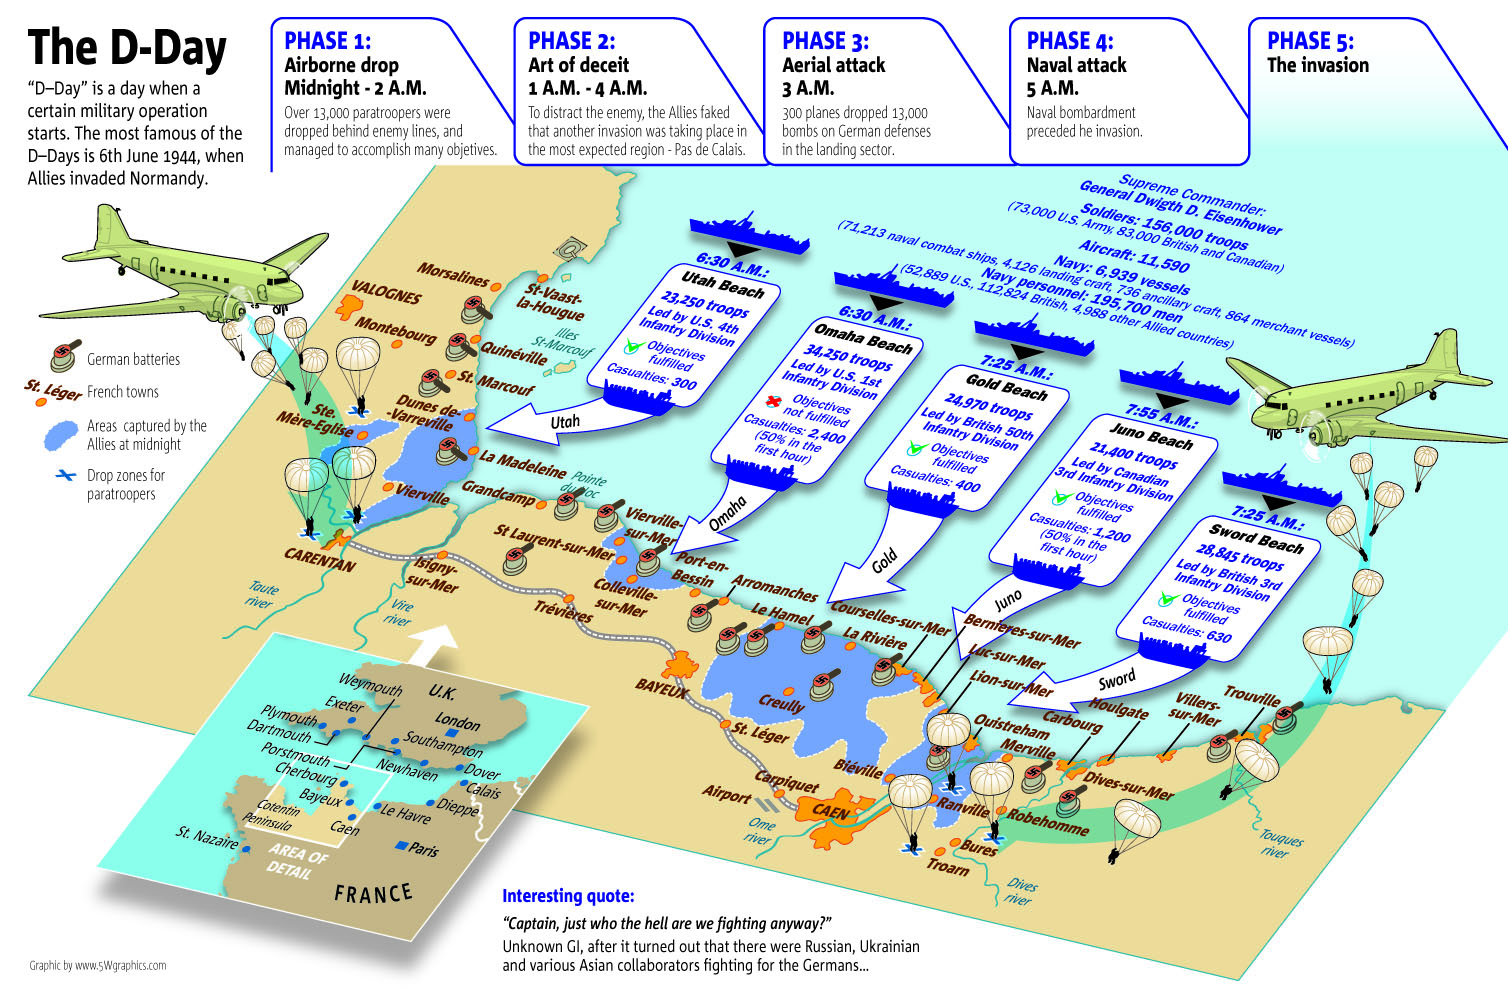 The 21 Best Infographics of D-Day - Normandy Landings Dday Map on democracy map, d-day landings map, nazi map, hitler map, d-day animated map, normandy map, france map, d day weather map, boat map, oklahoma d-day map, action map, dayz map, eisenhower map, d-day europe map, juno beach map, falaise gap map, d-day interactive map, d-day beach map, minecraft d-day map,